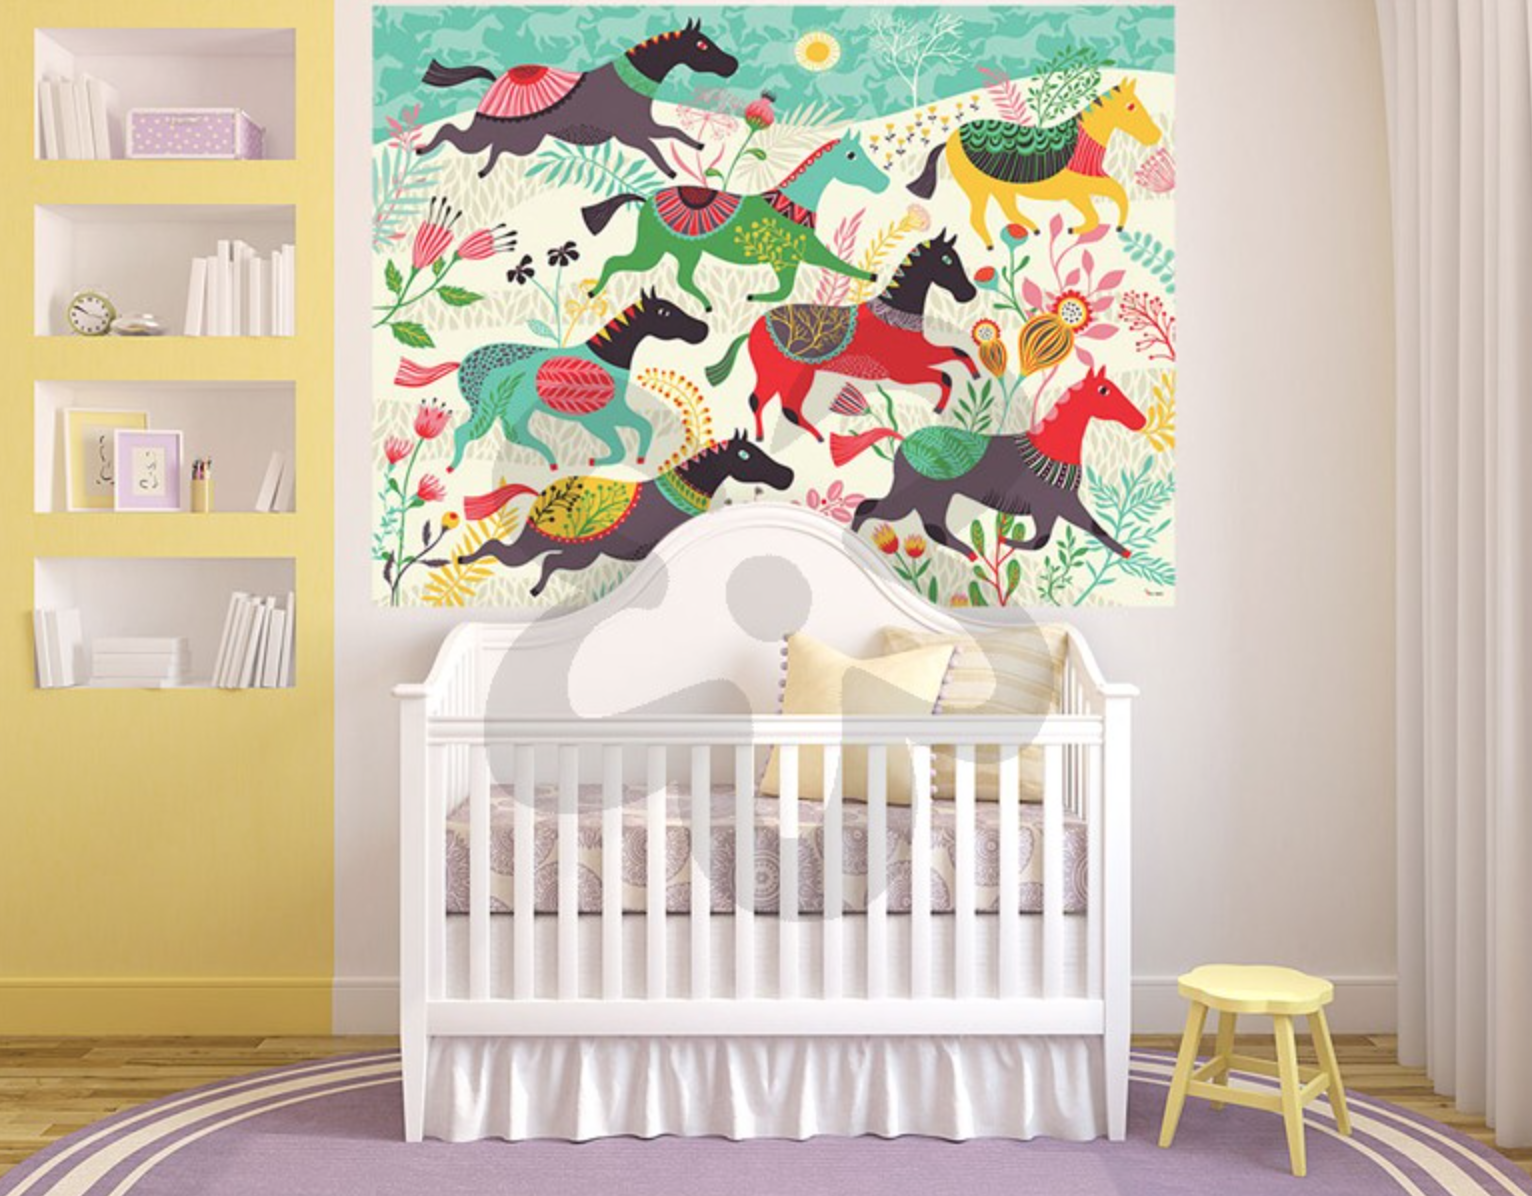 Fresh Nursery room horse decal